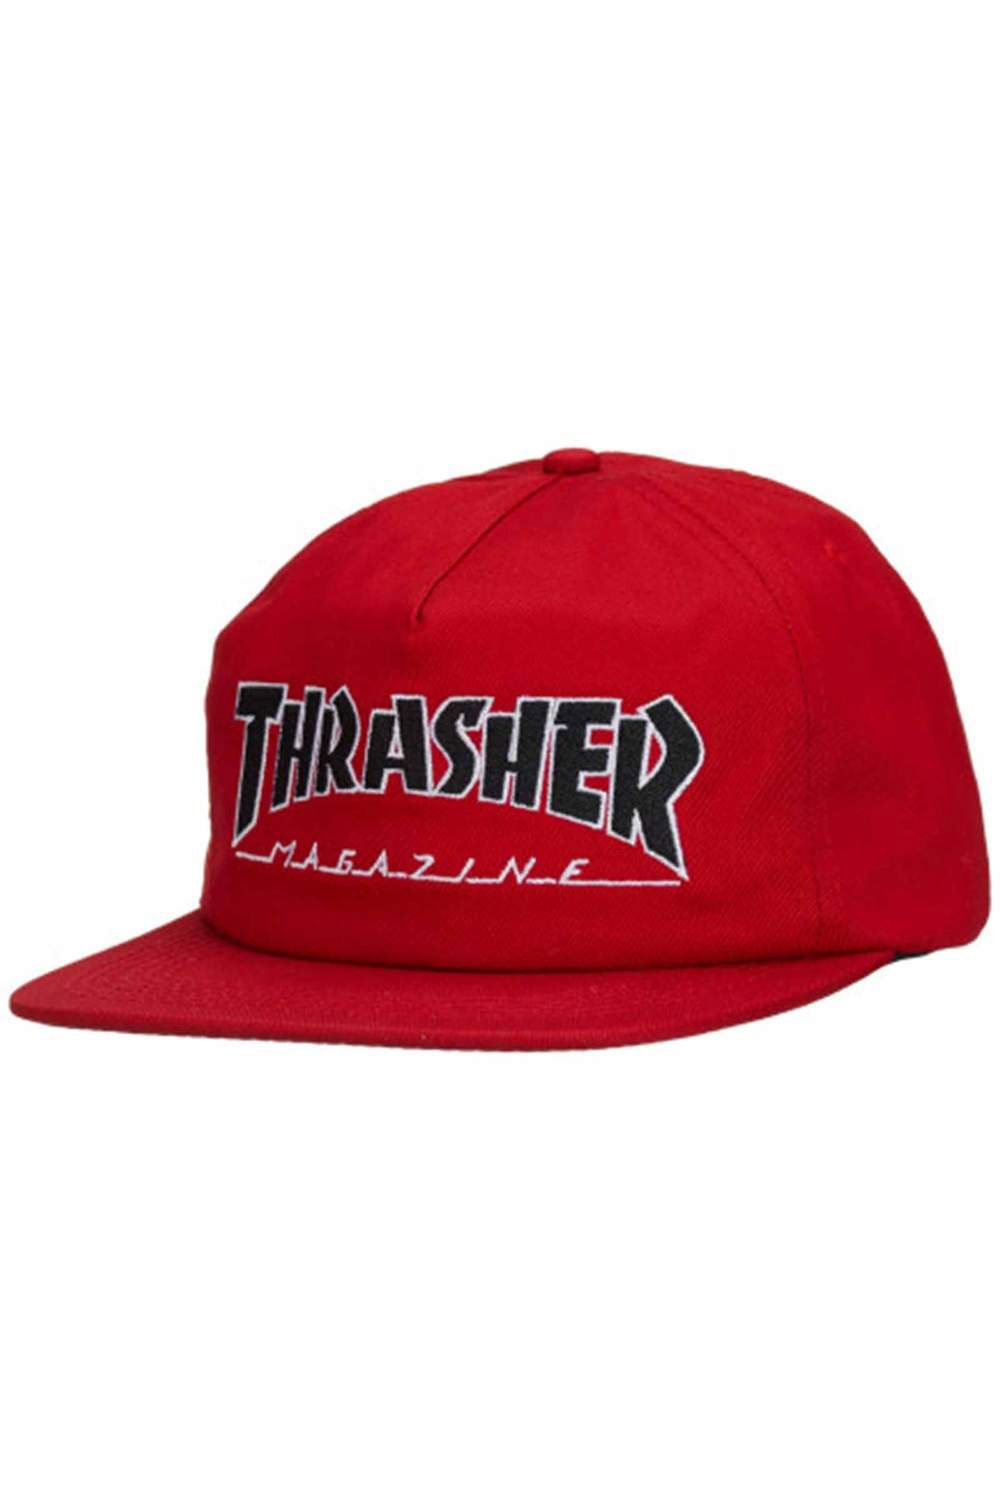 Buy Thrasher Outlined Snapback  0446891183ad